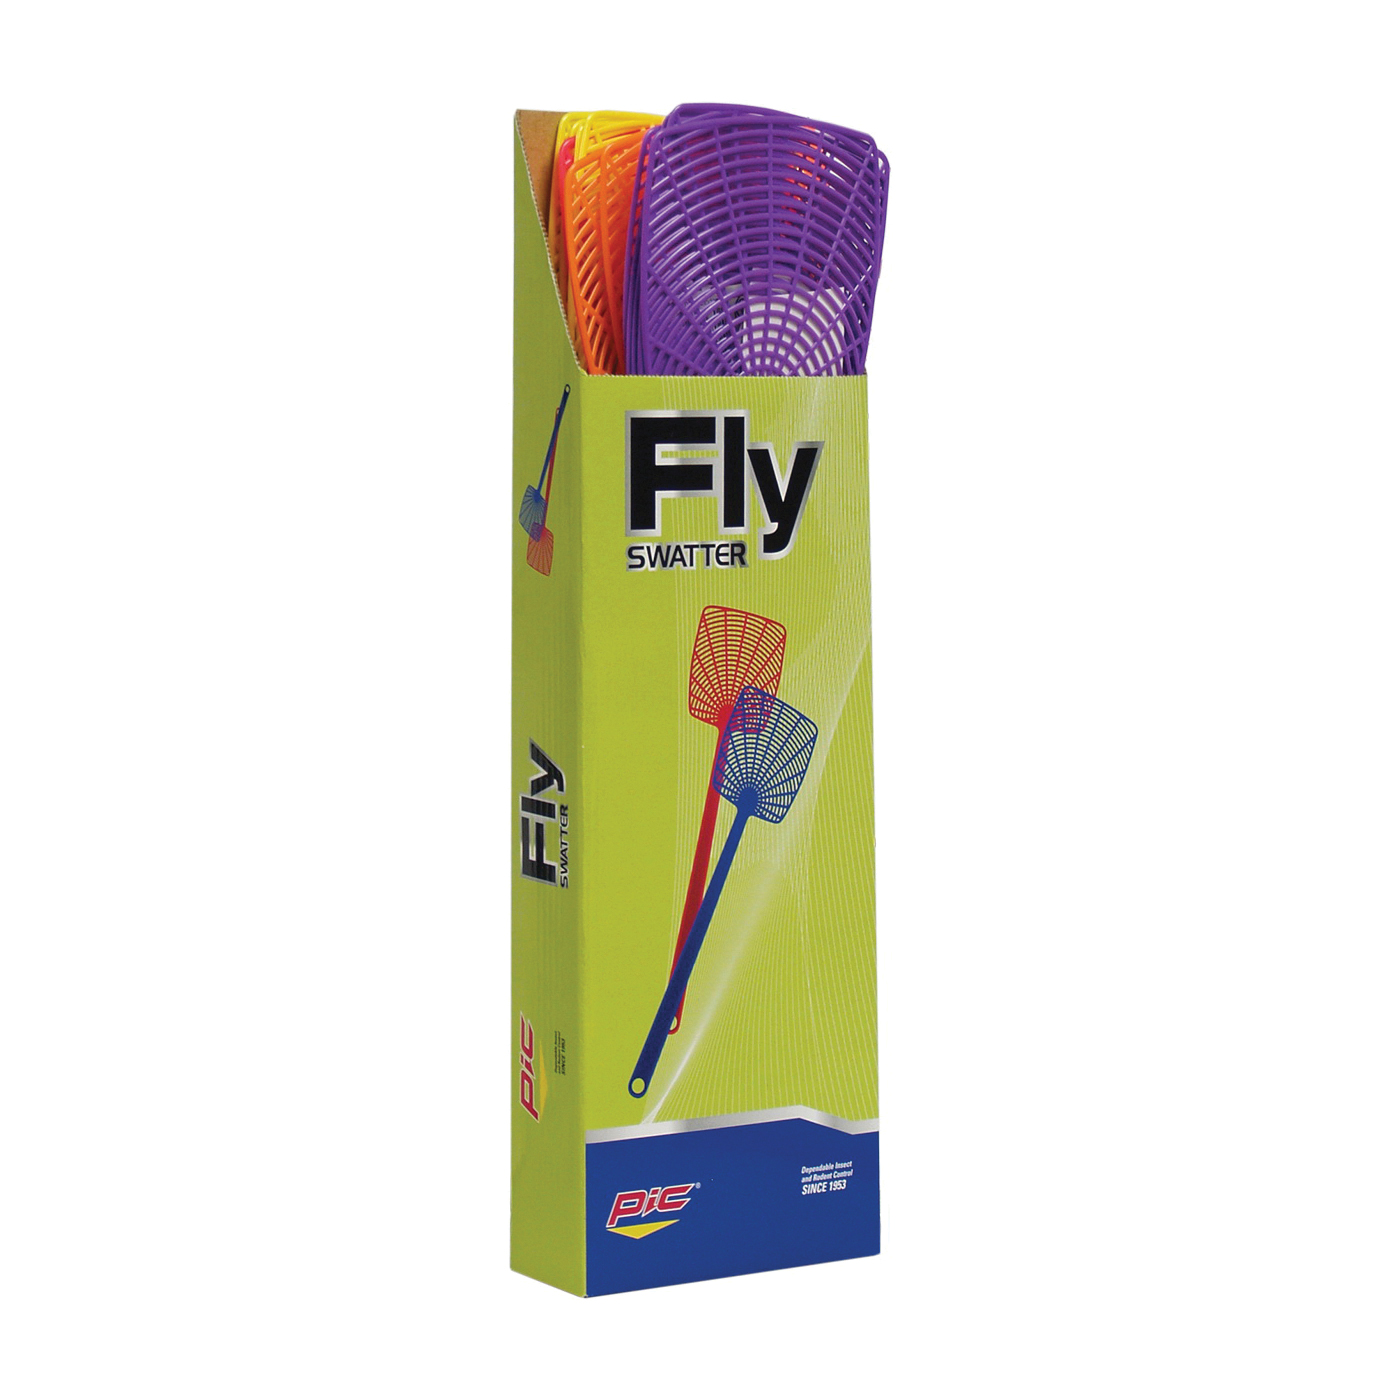 Picture of Pic 274 Fly Swatter, 5 in L Mesh, 3-1/2 in W Mesh, Plastic Mesh